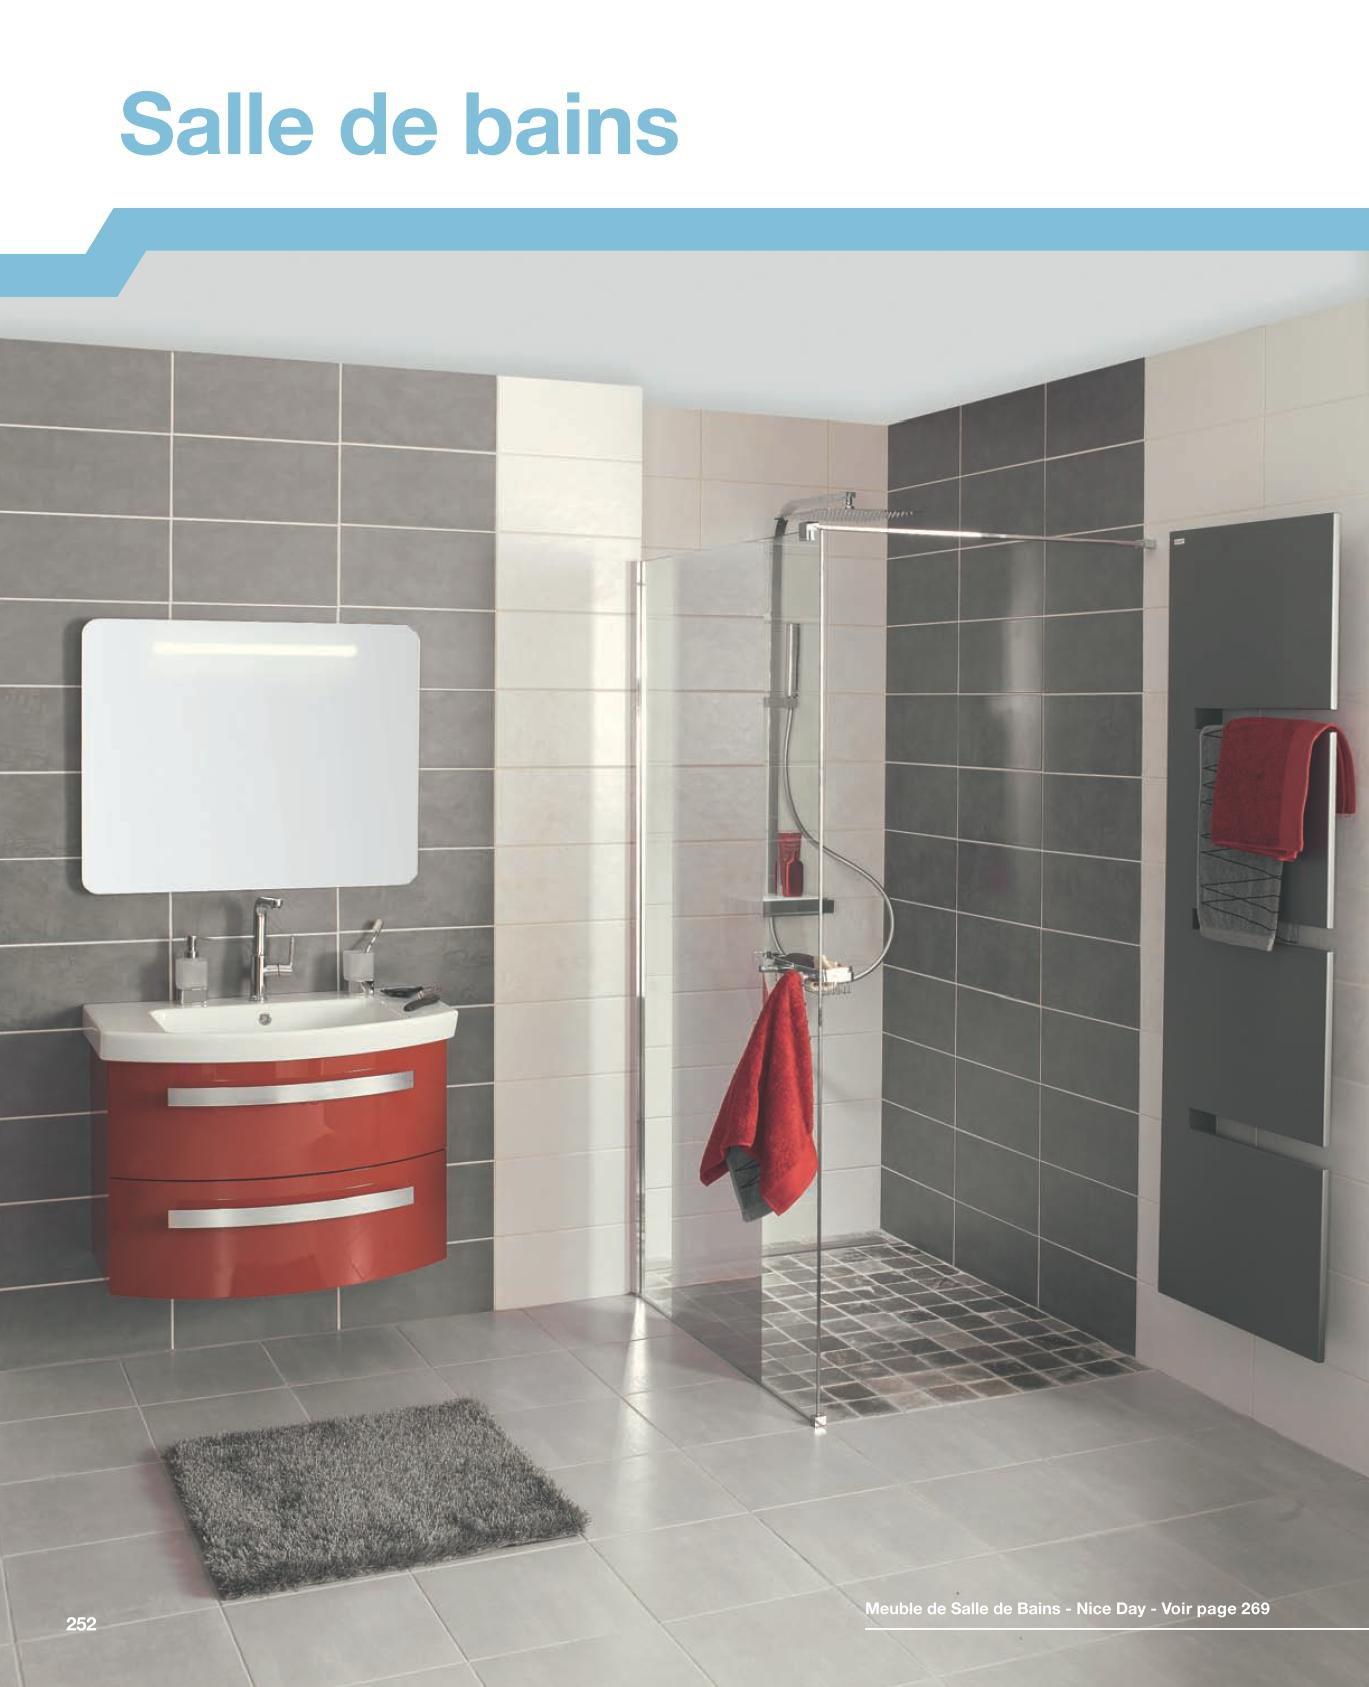 Salle de bain point p good design carrelage gris salon for Faience salle de bain gris clair